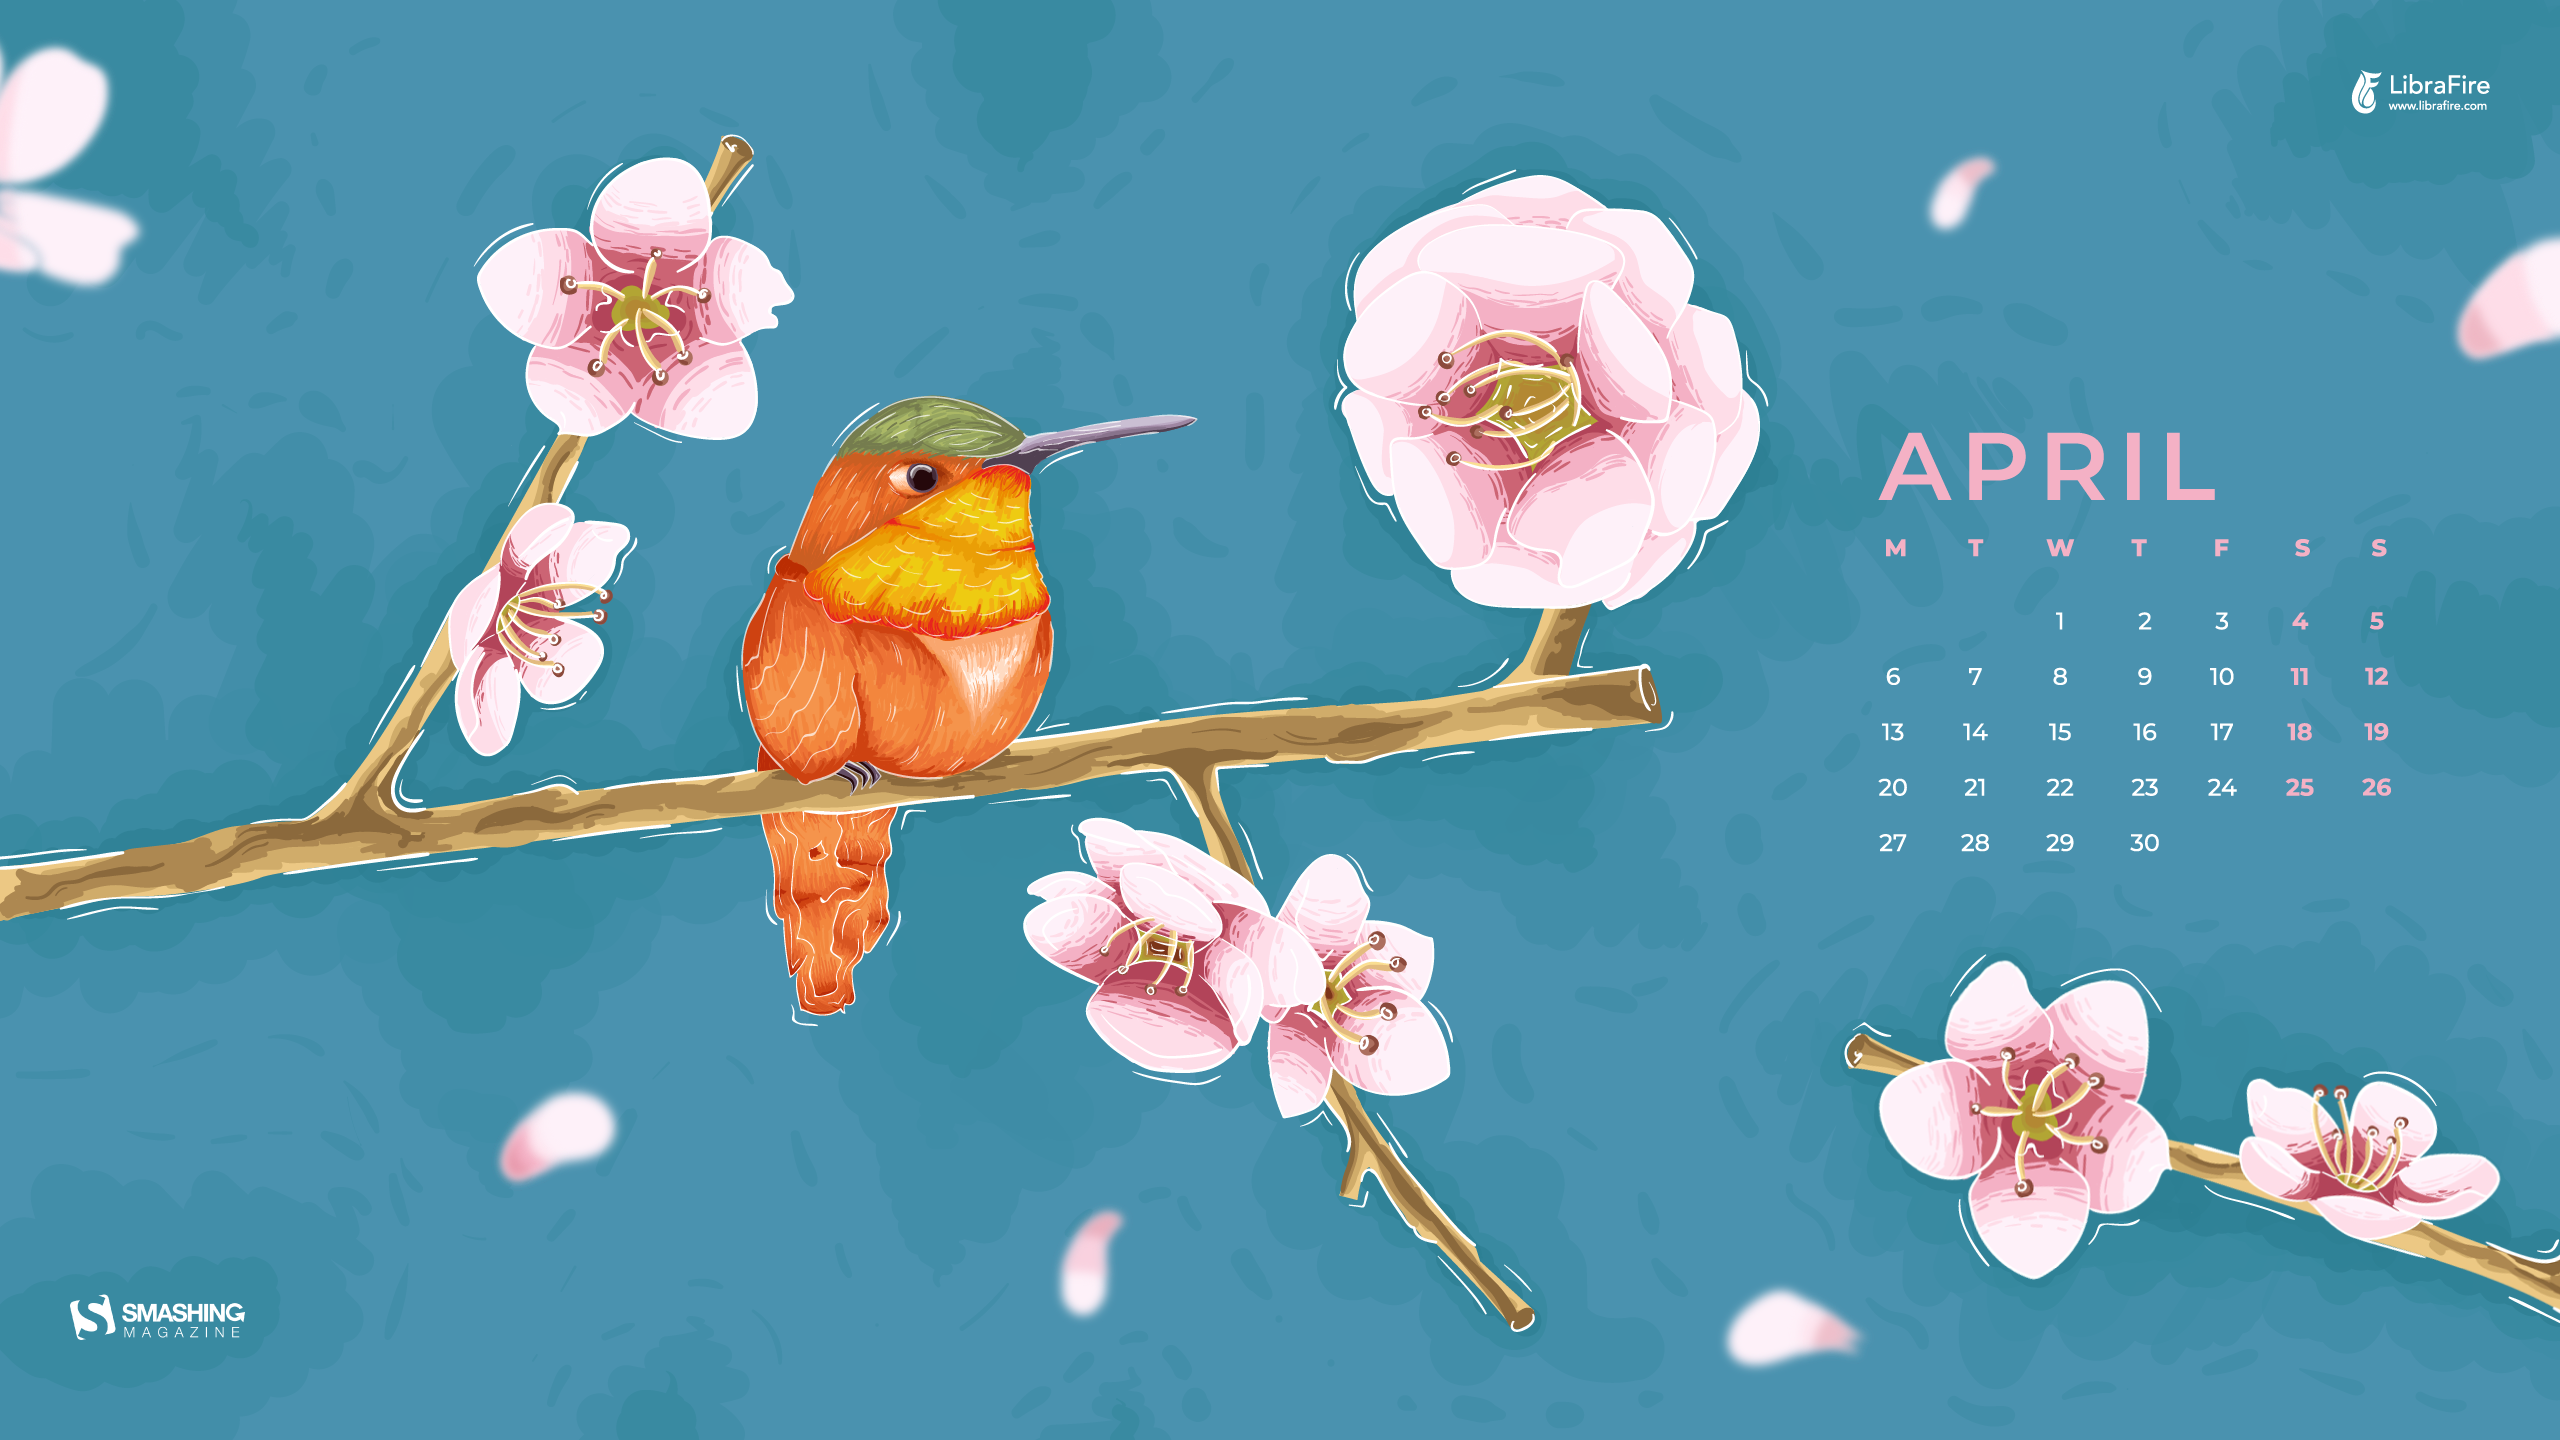 Stay Creative Stay Inspired April 2020 Wallpapers Edition Smashing Magazine